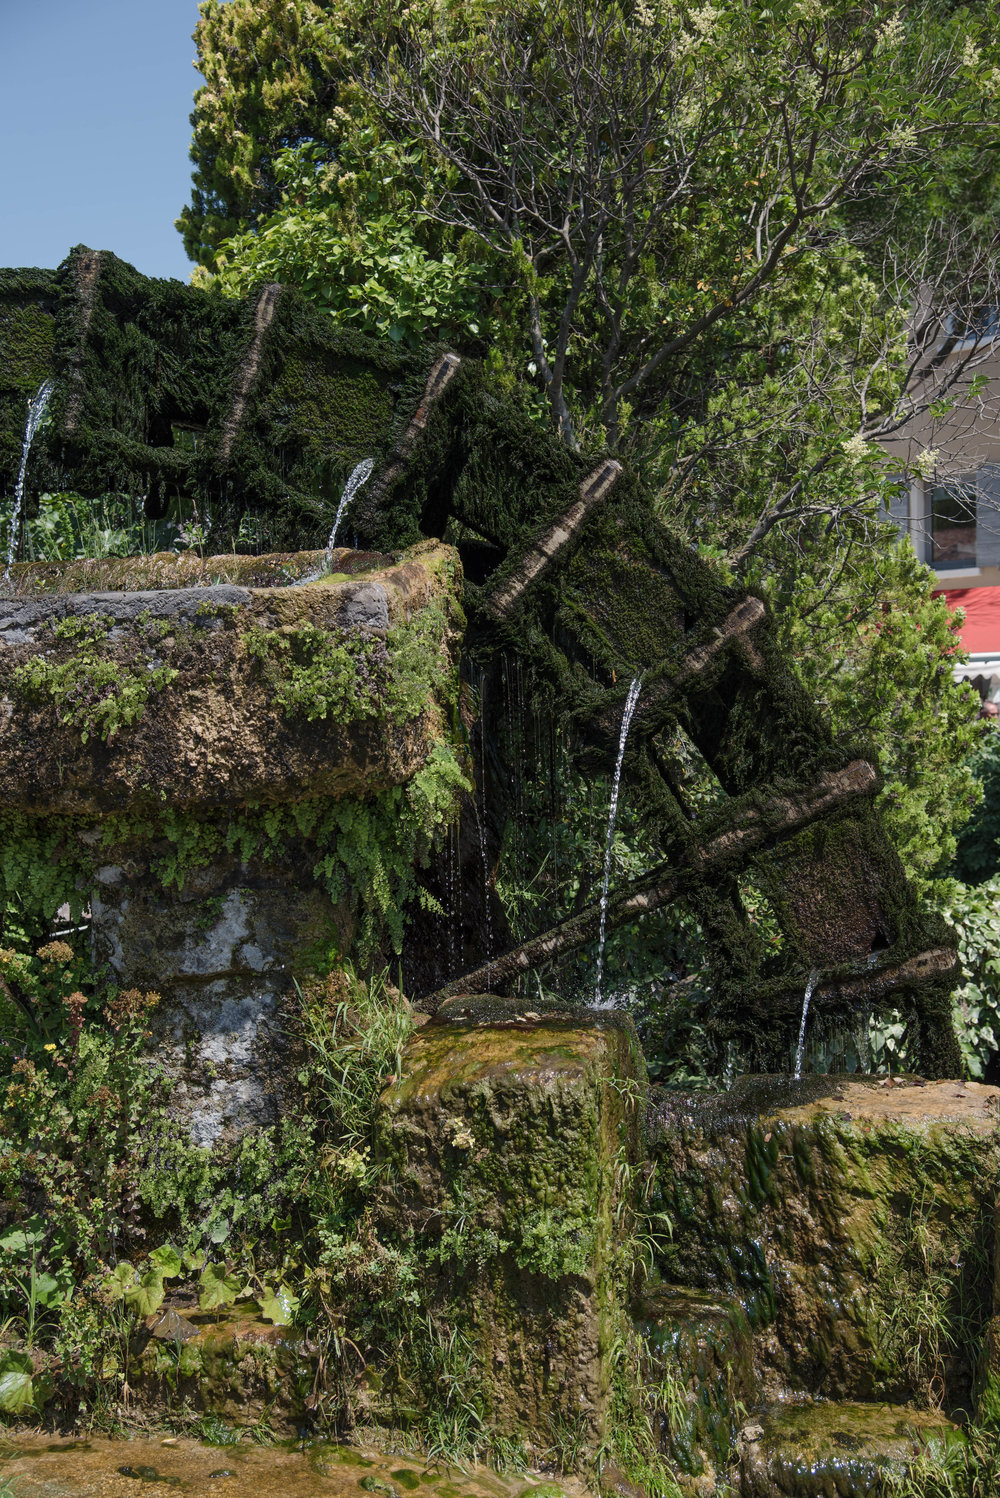 One of the moss-covered mill still gently churning the water from the river.